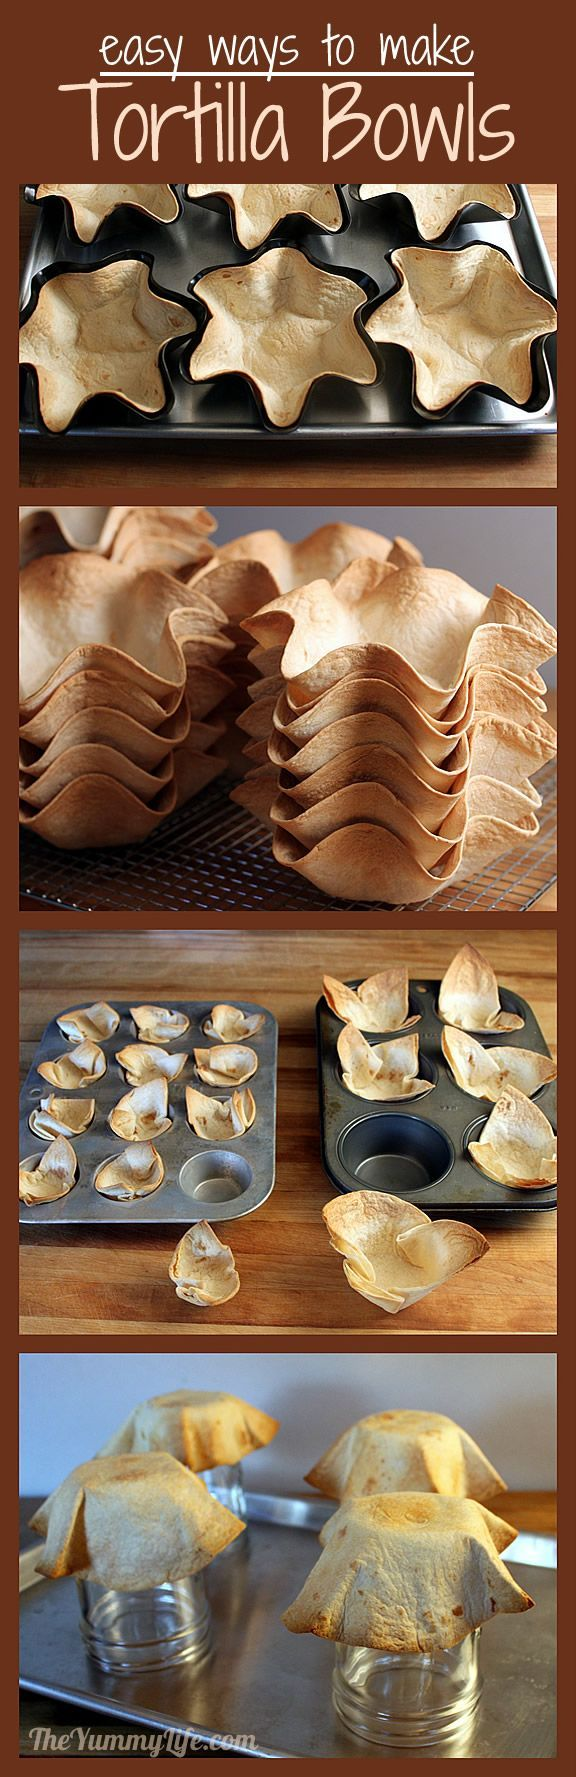 Tortilla Bowls - So tasty and a great alternative to overly salty tortilla chips